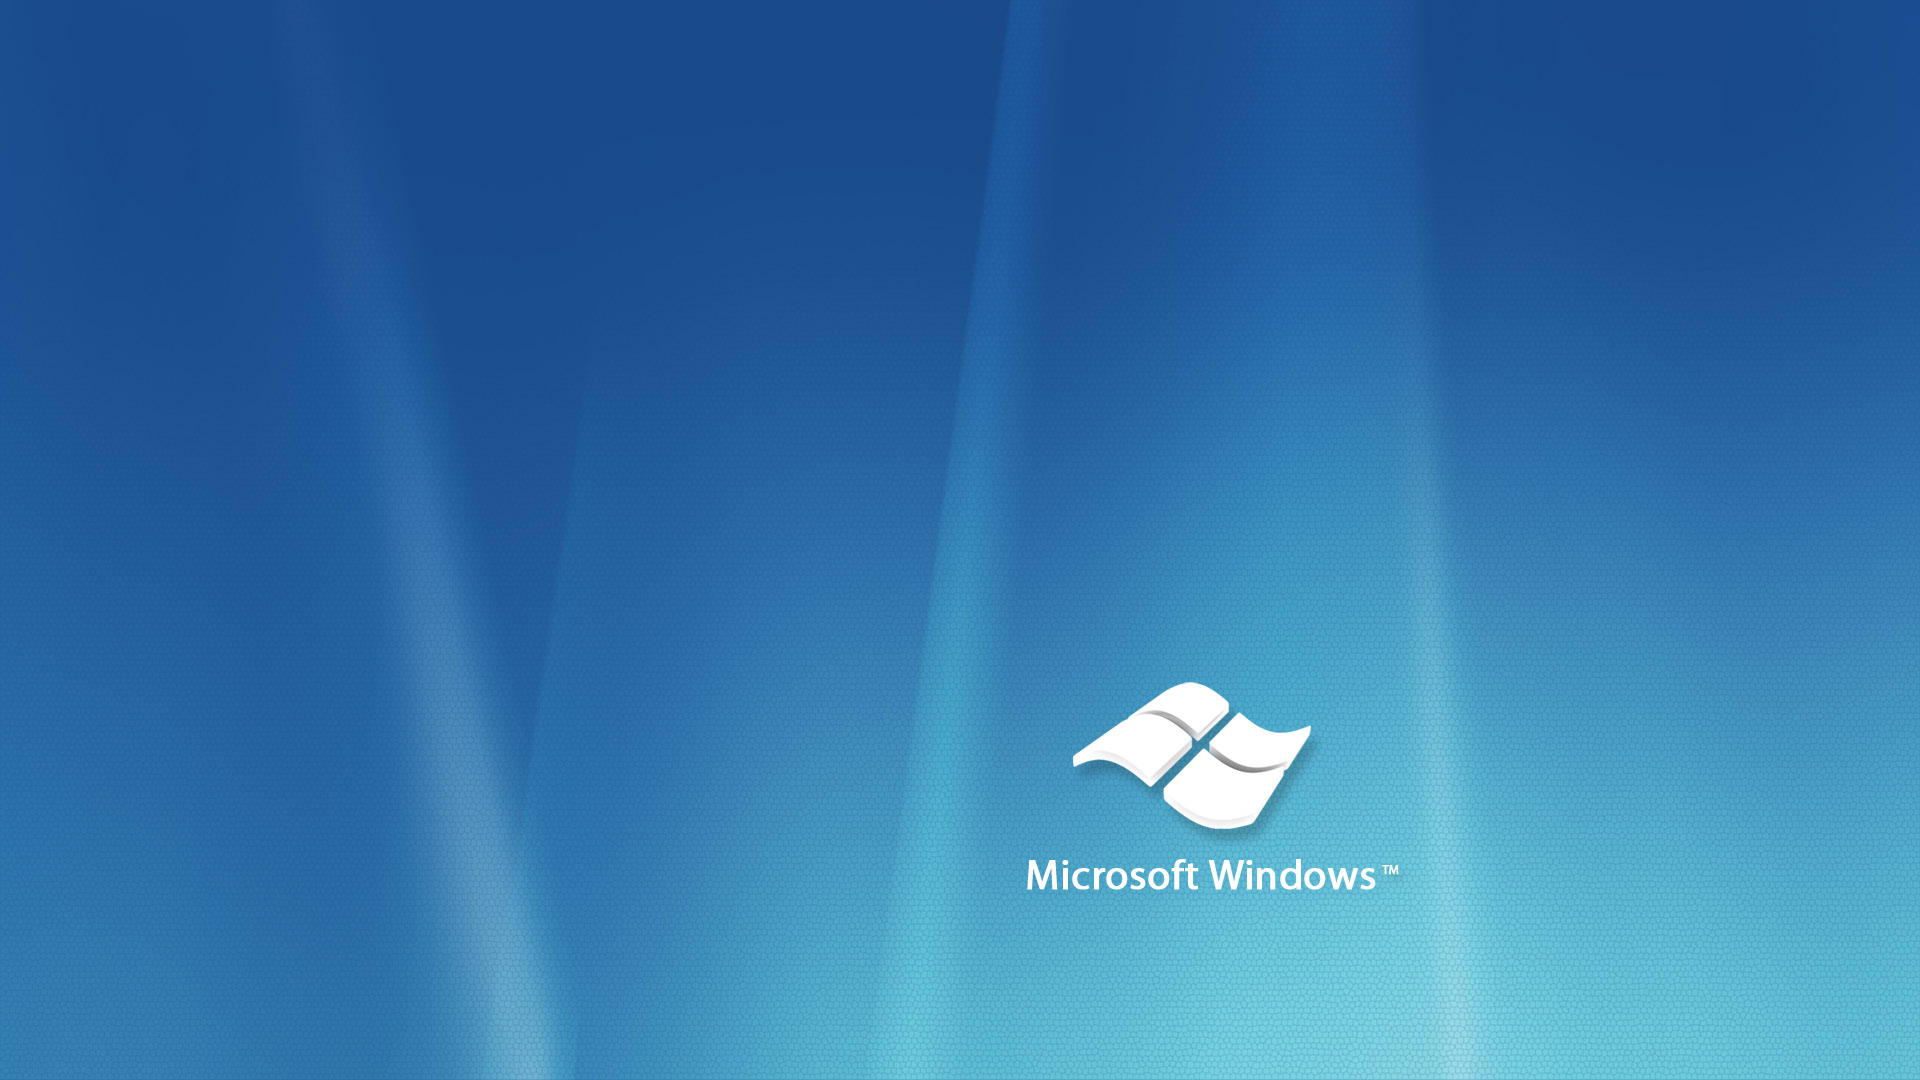 Windows MS